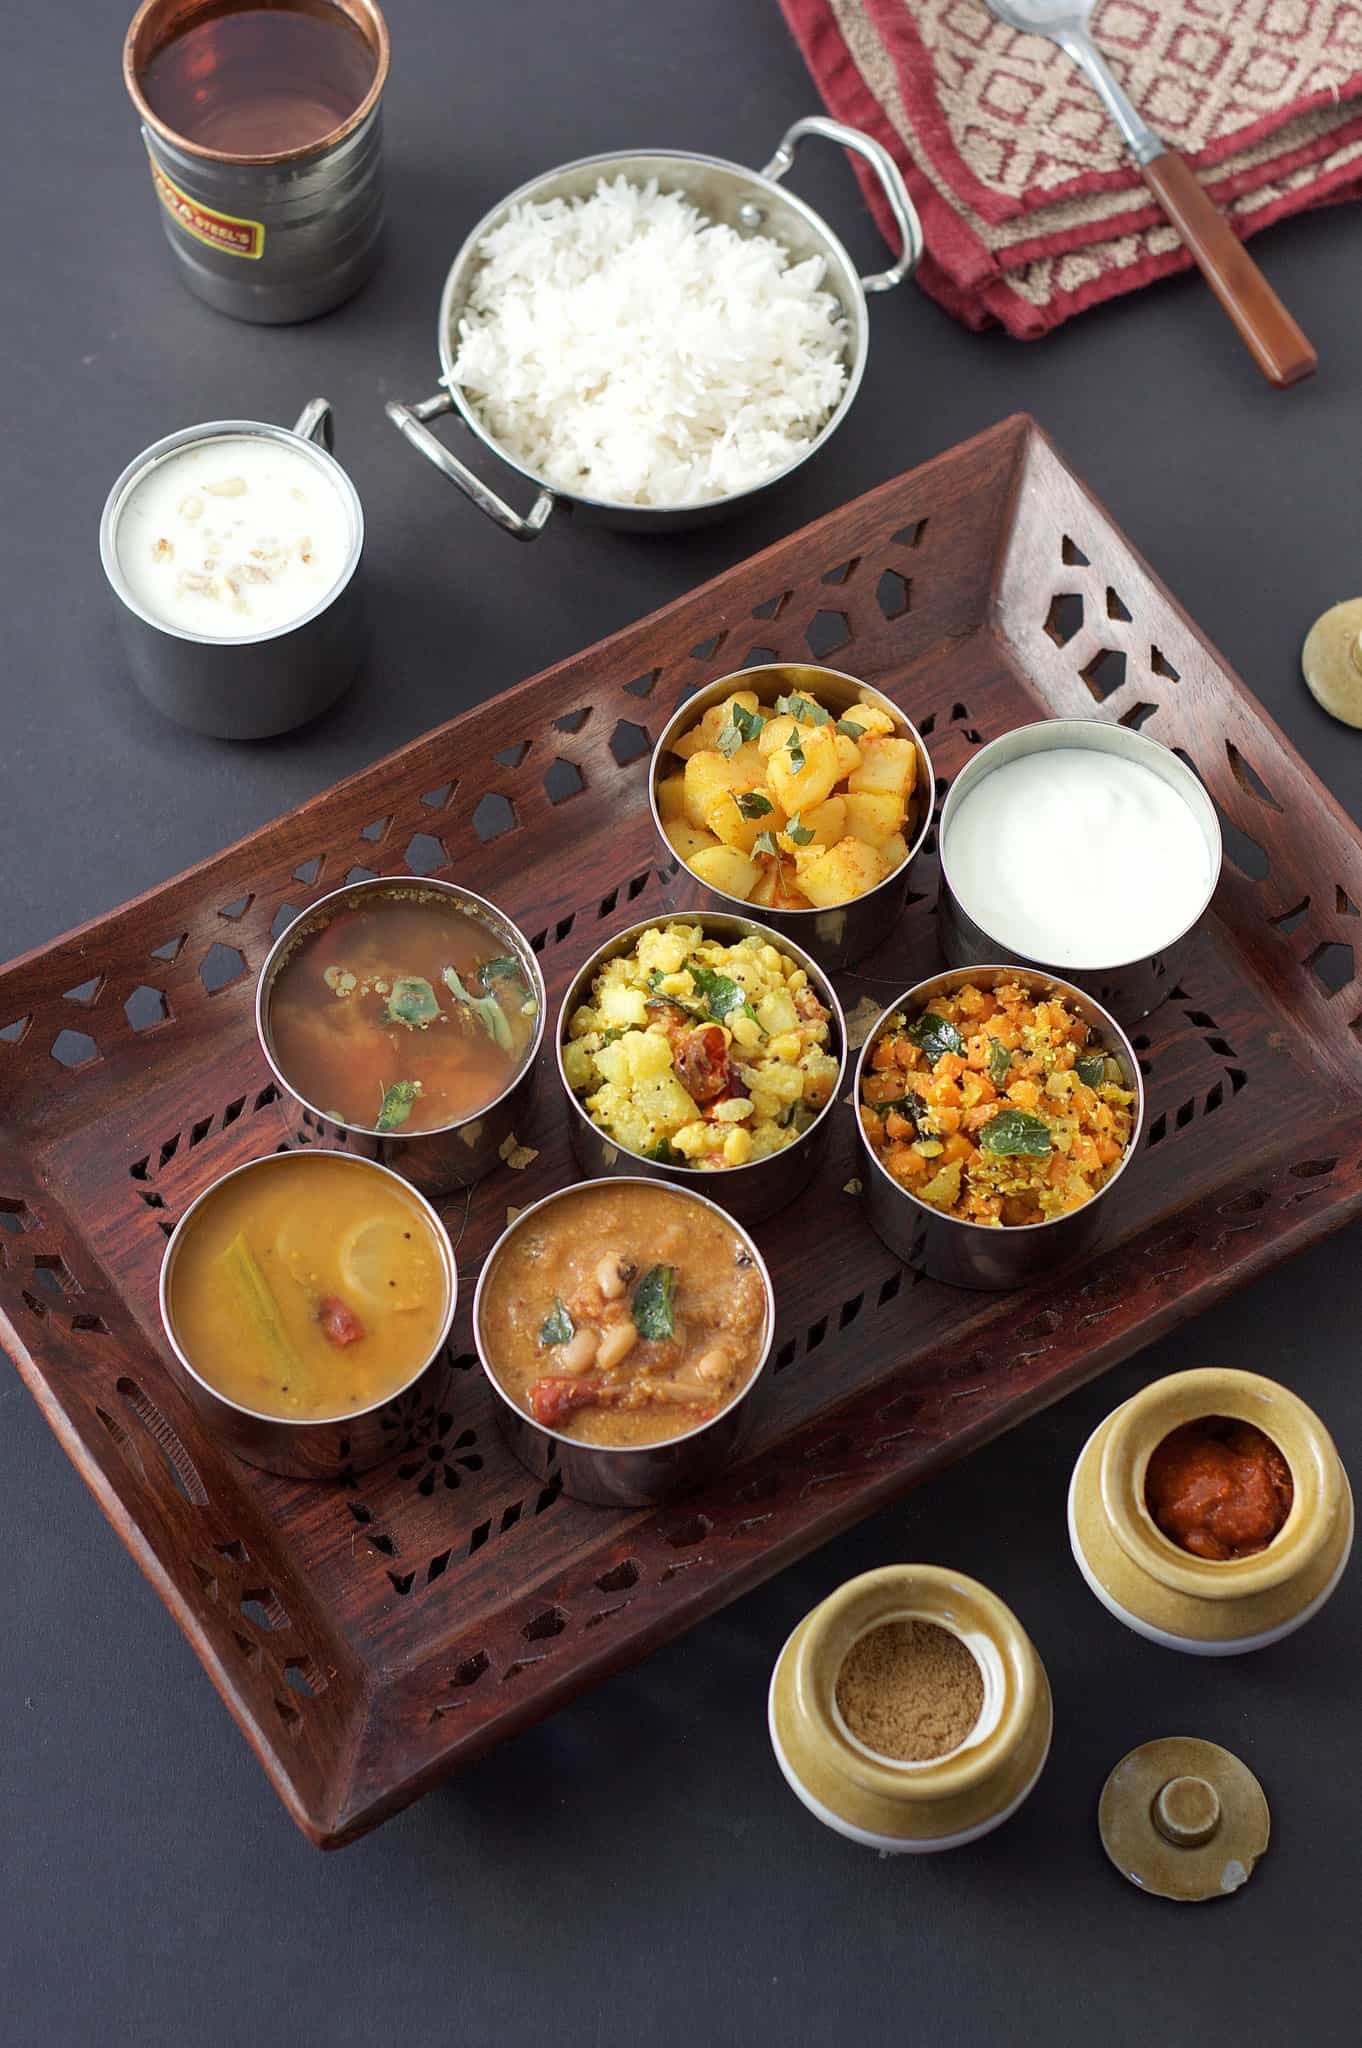 Restuarant style tamil nadu thali the magic saucepan characteristic for every human being in this present social media and networking predominant world it is a very interesting self help genre book forumfinder Gallery